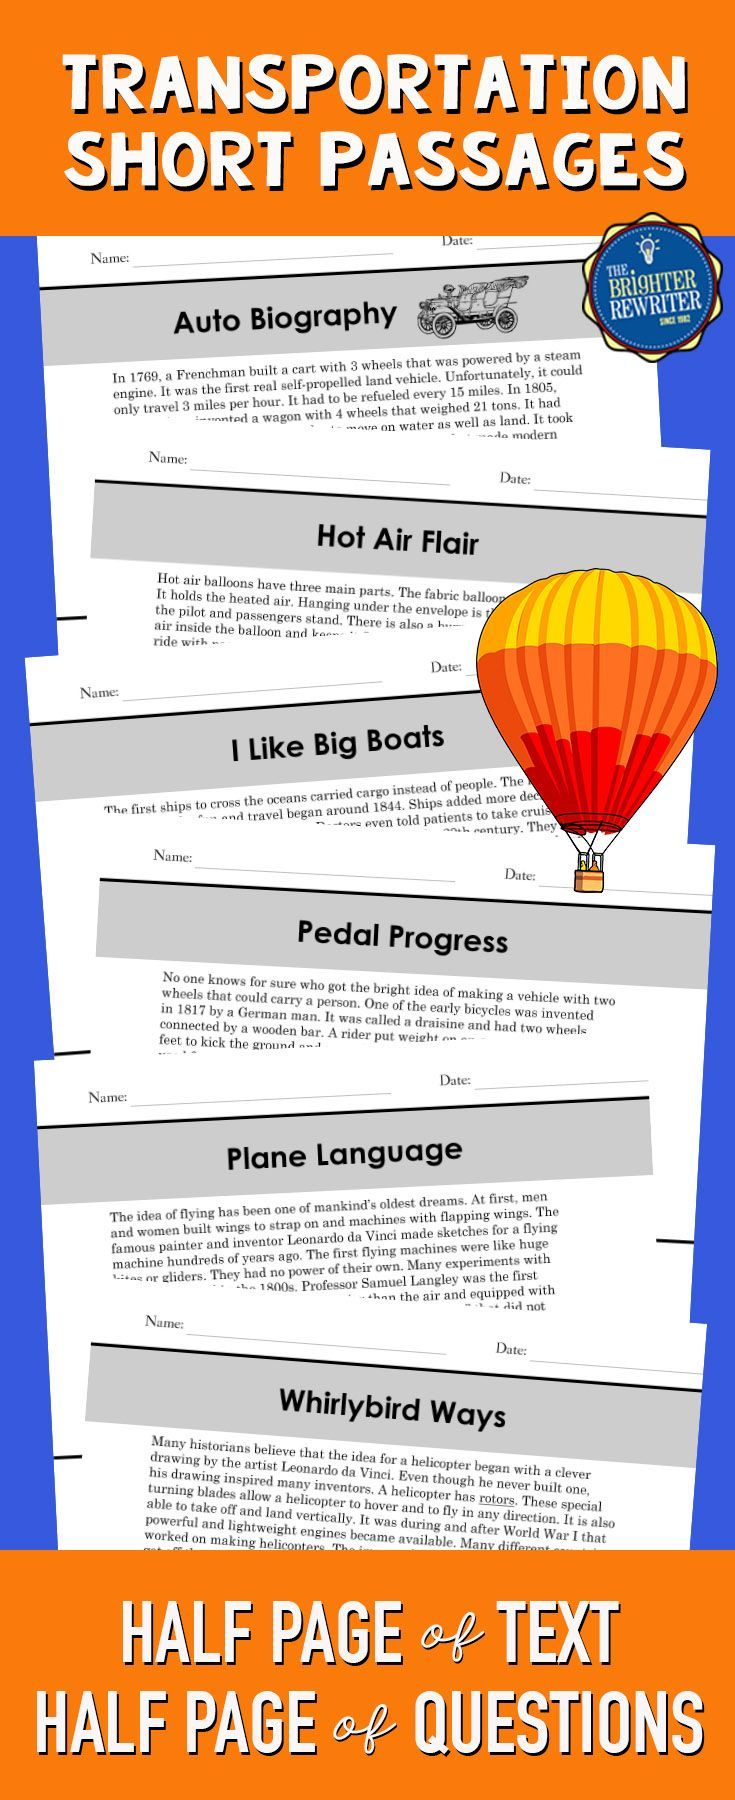 6 transportation nonfiction mini-passages with a paragraph of informational text and 4 multiple-choice comprehension questions on one page. The topics include airplanes, bicycles, cars, cruise ships, helicopters, and hot air balloons.